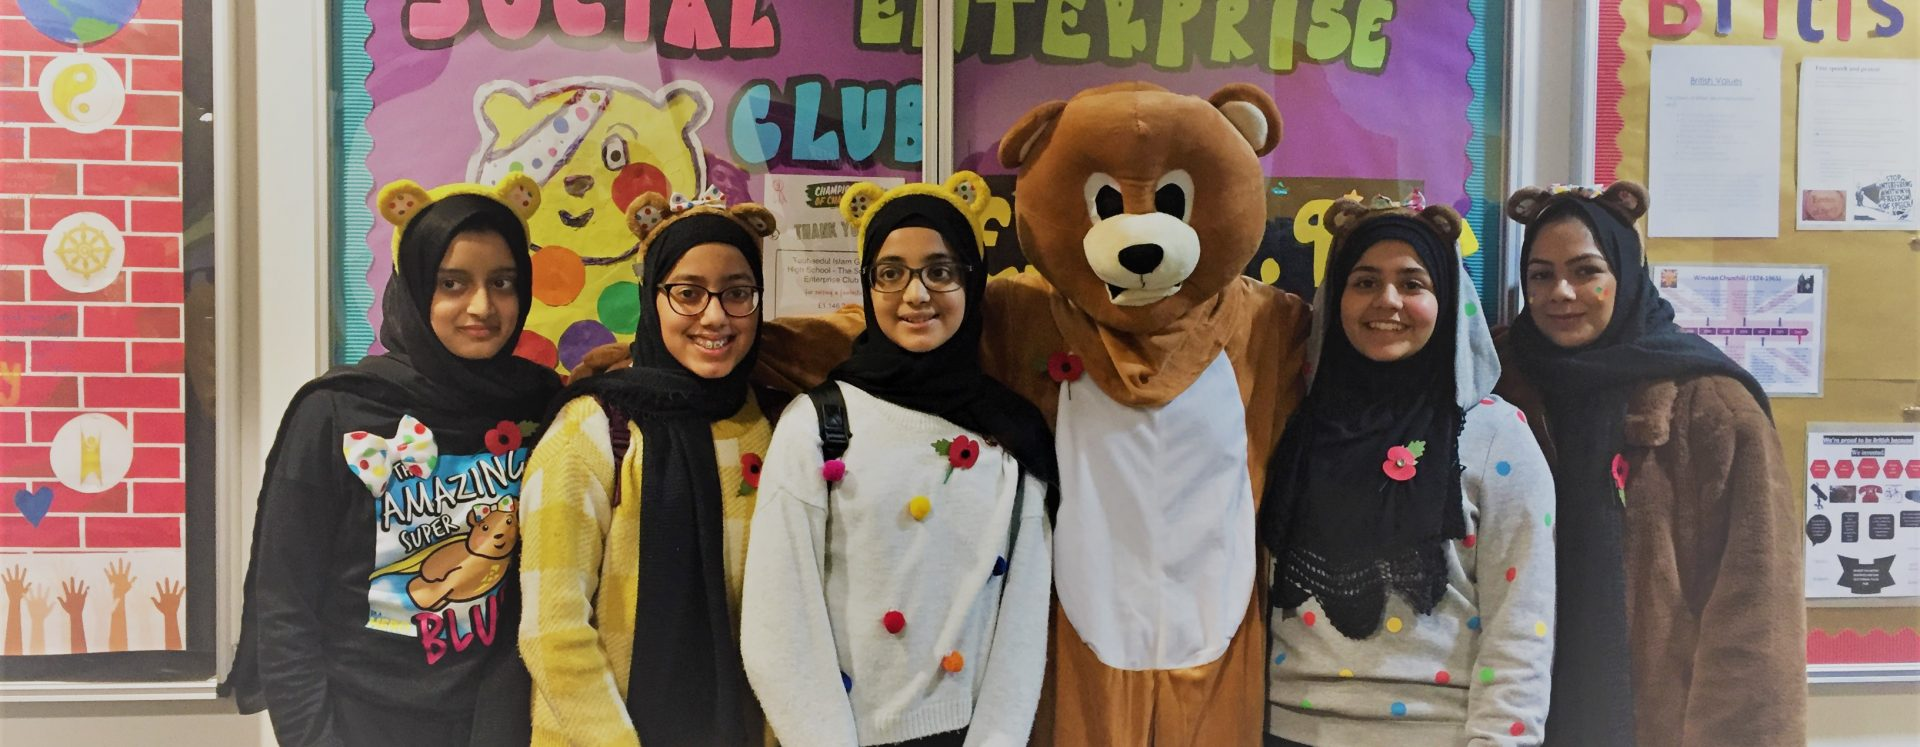 Enterprising Pupils Raise £875 for Children in Need